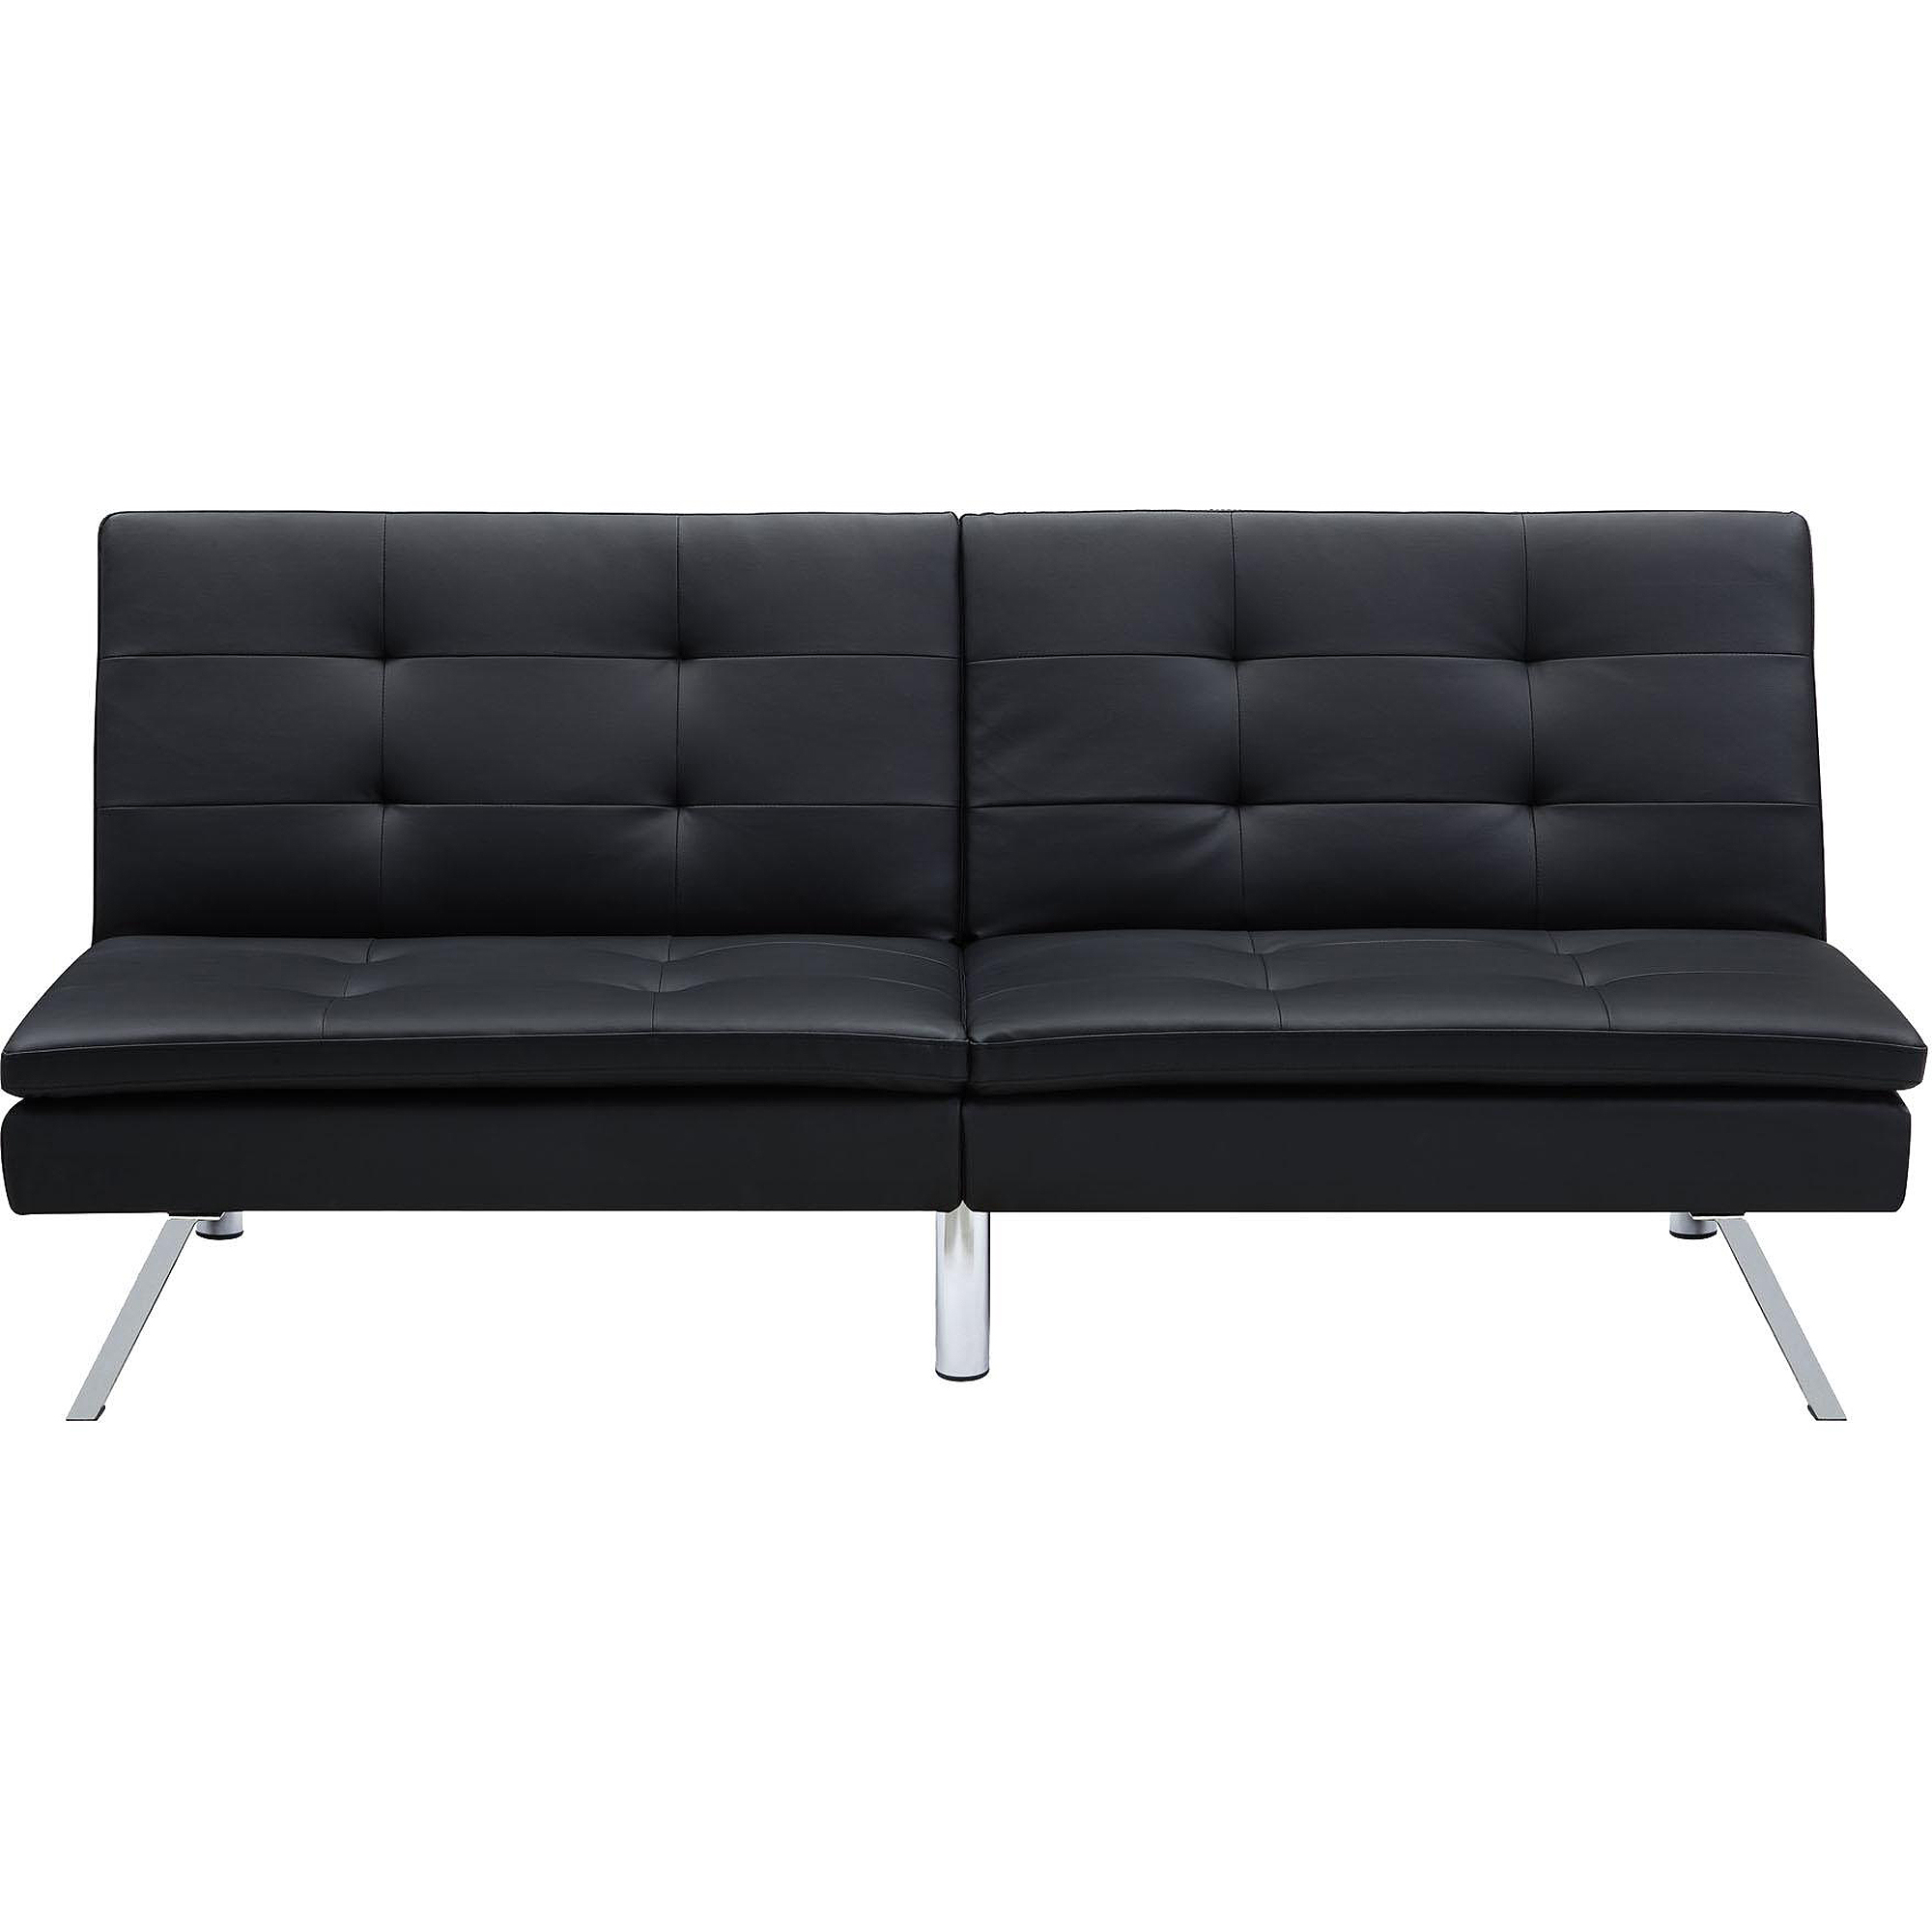 Astounding Dhp Chelsea Convertible Pillow Top Sofa Futon Black Walmart Com Machost Co Dining Chair Design Ideas Machostcouk